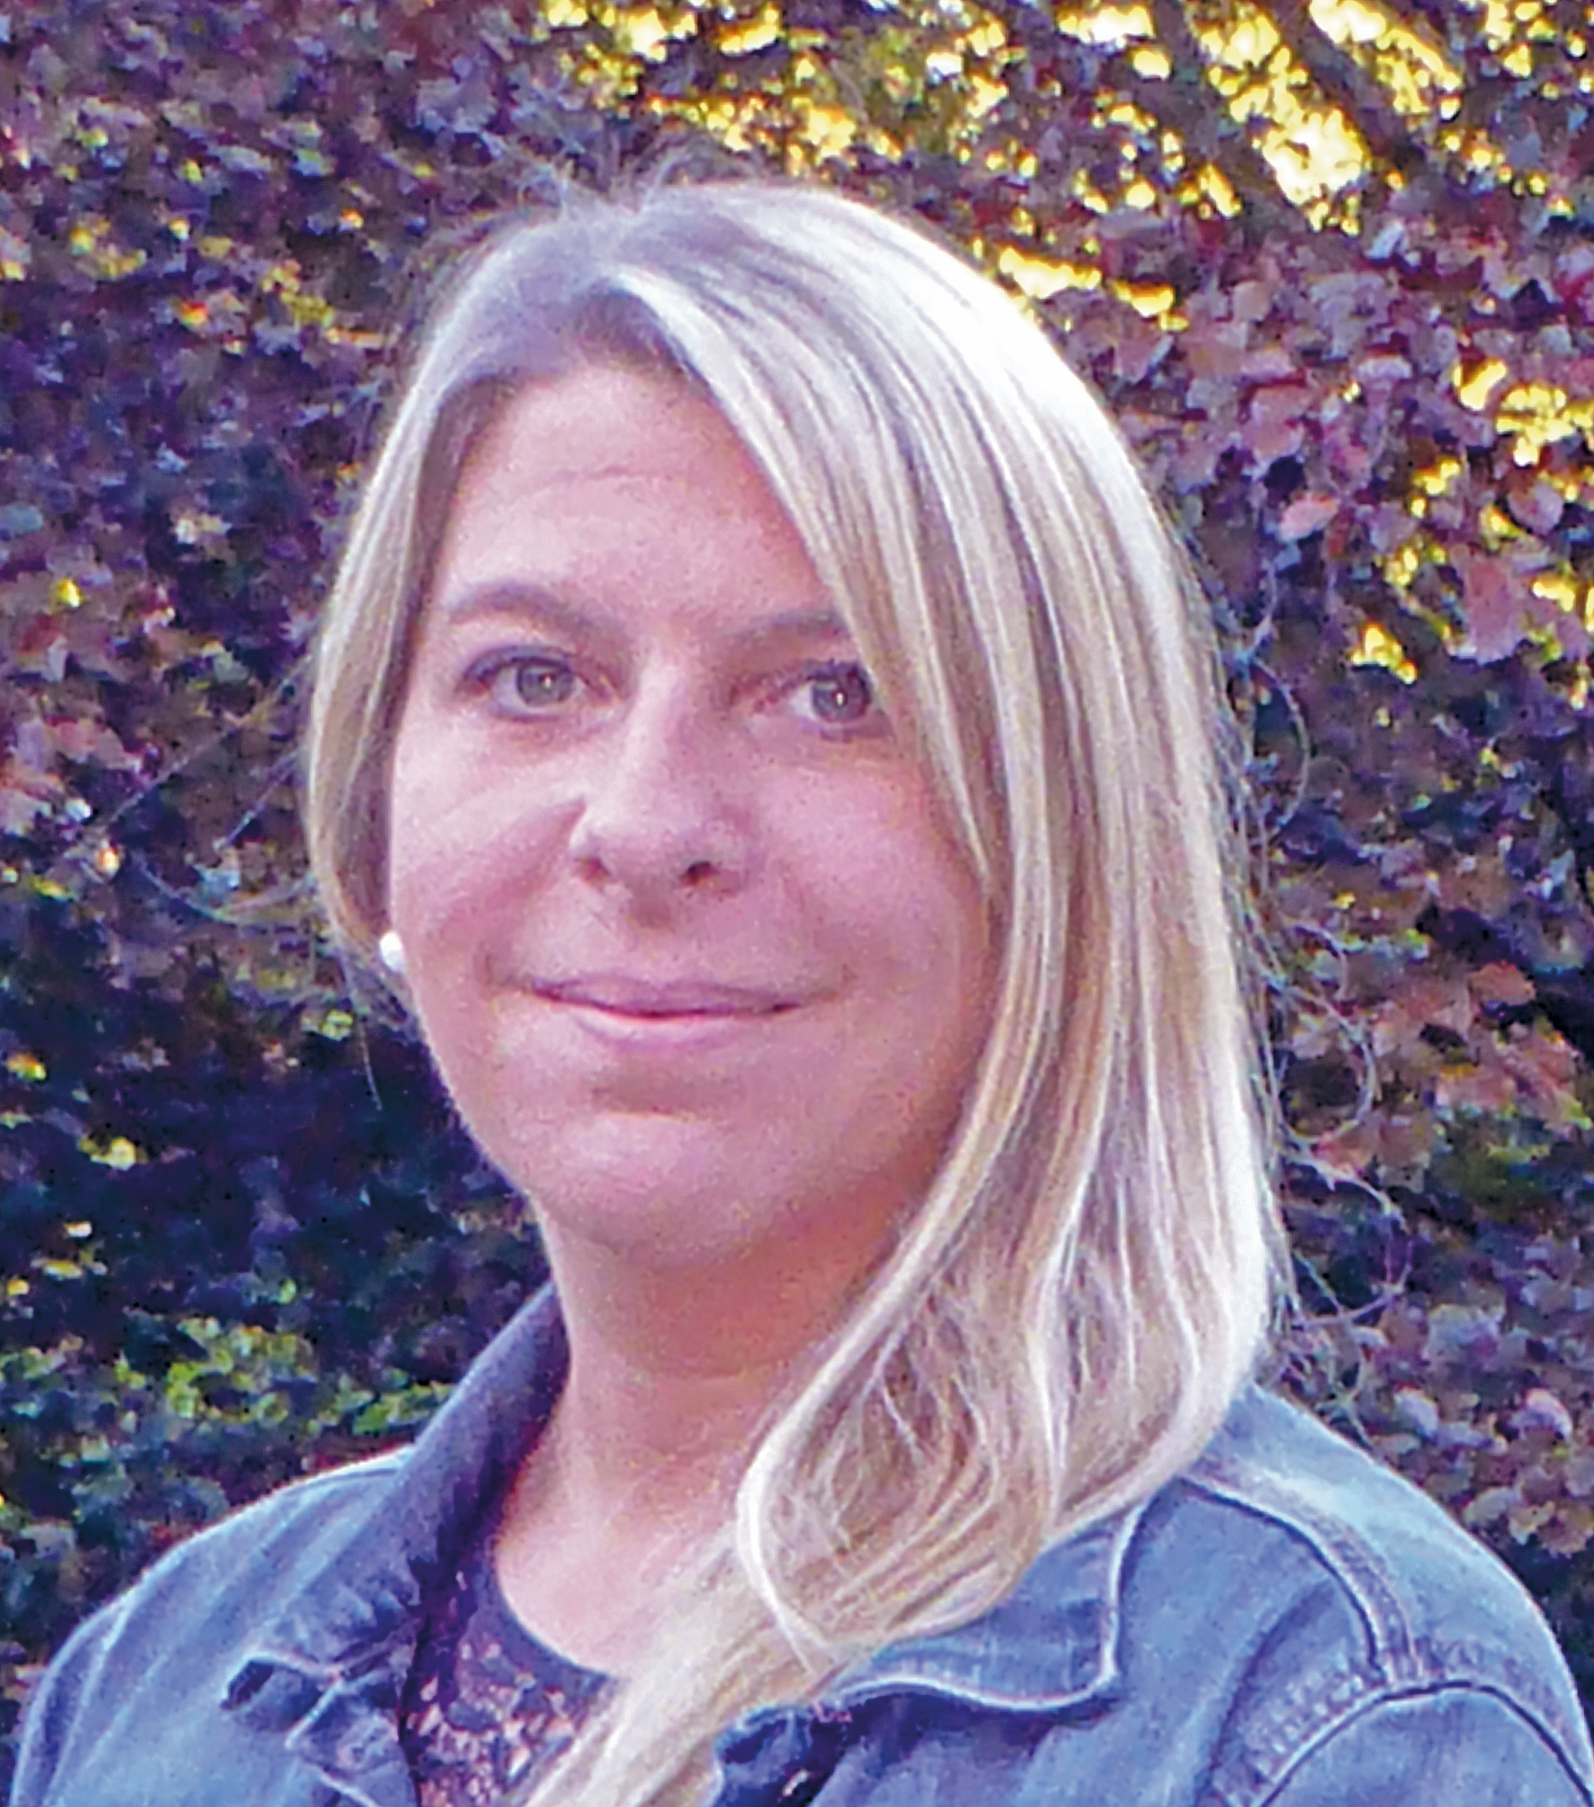 Lena Wigh Fransson